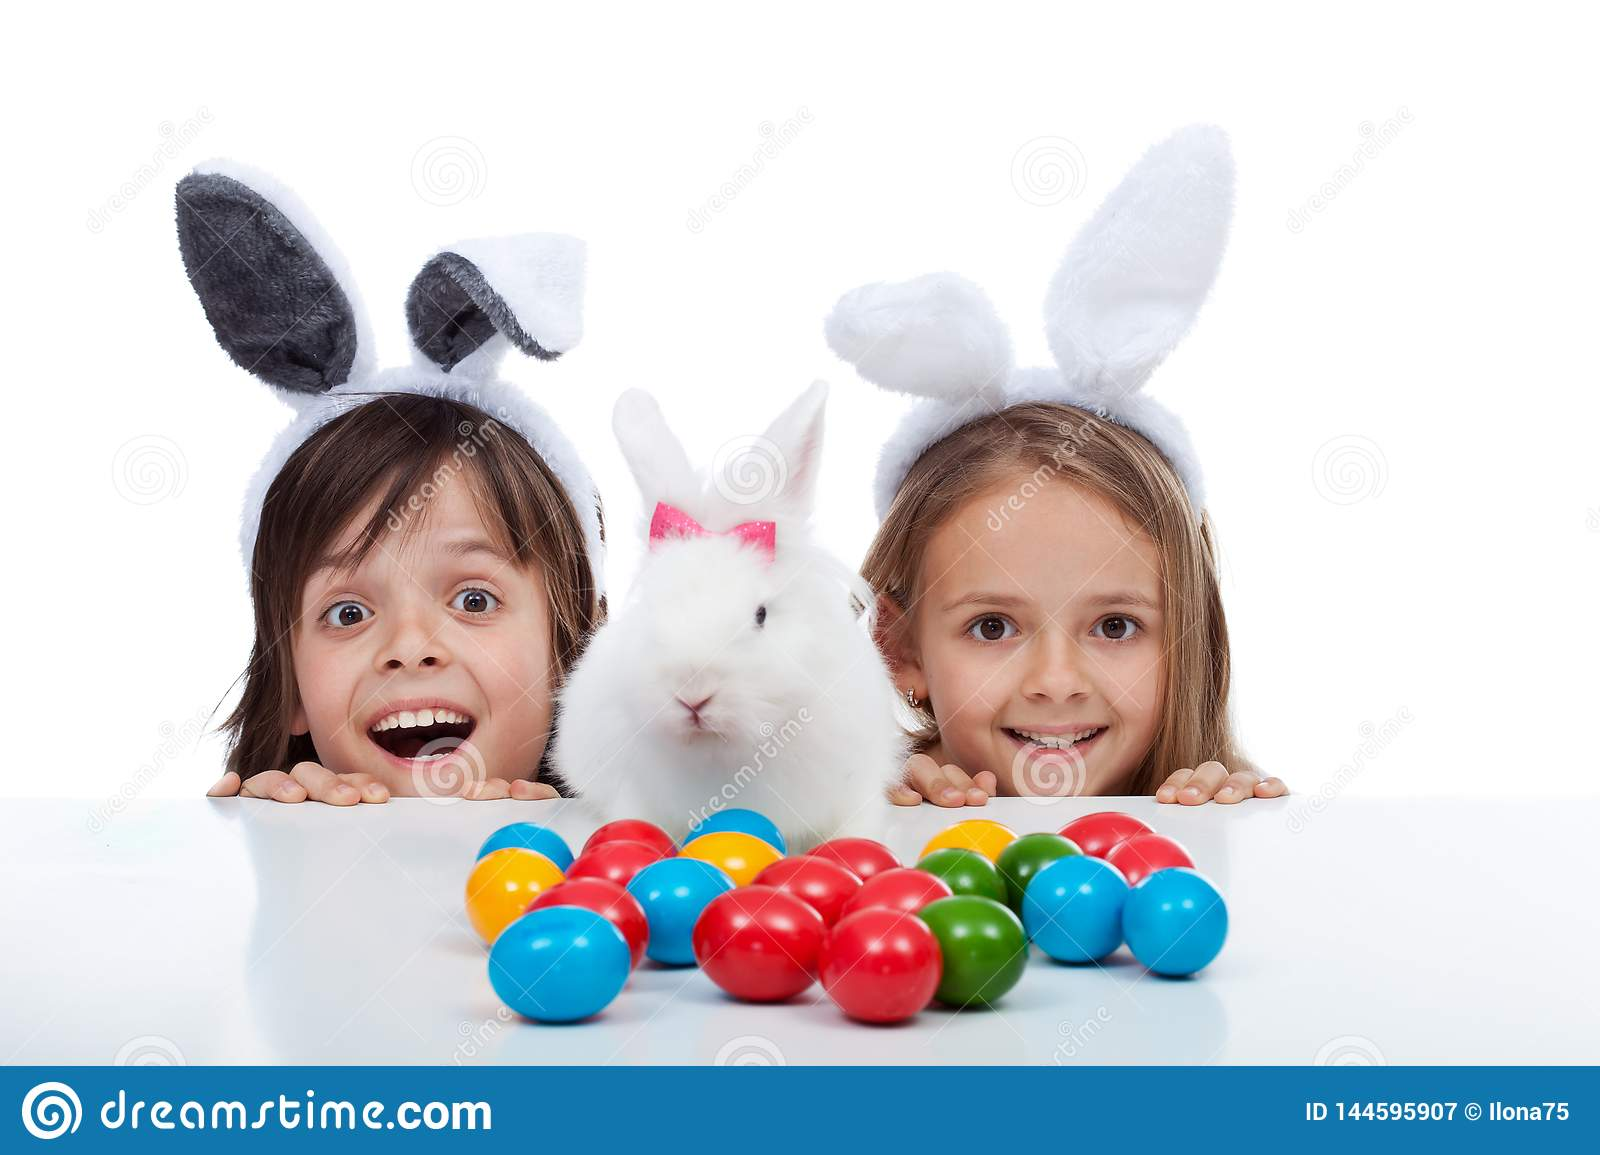 Happy kids found the easter bunny and the eggs dying site - isolated on white